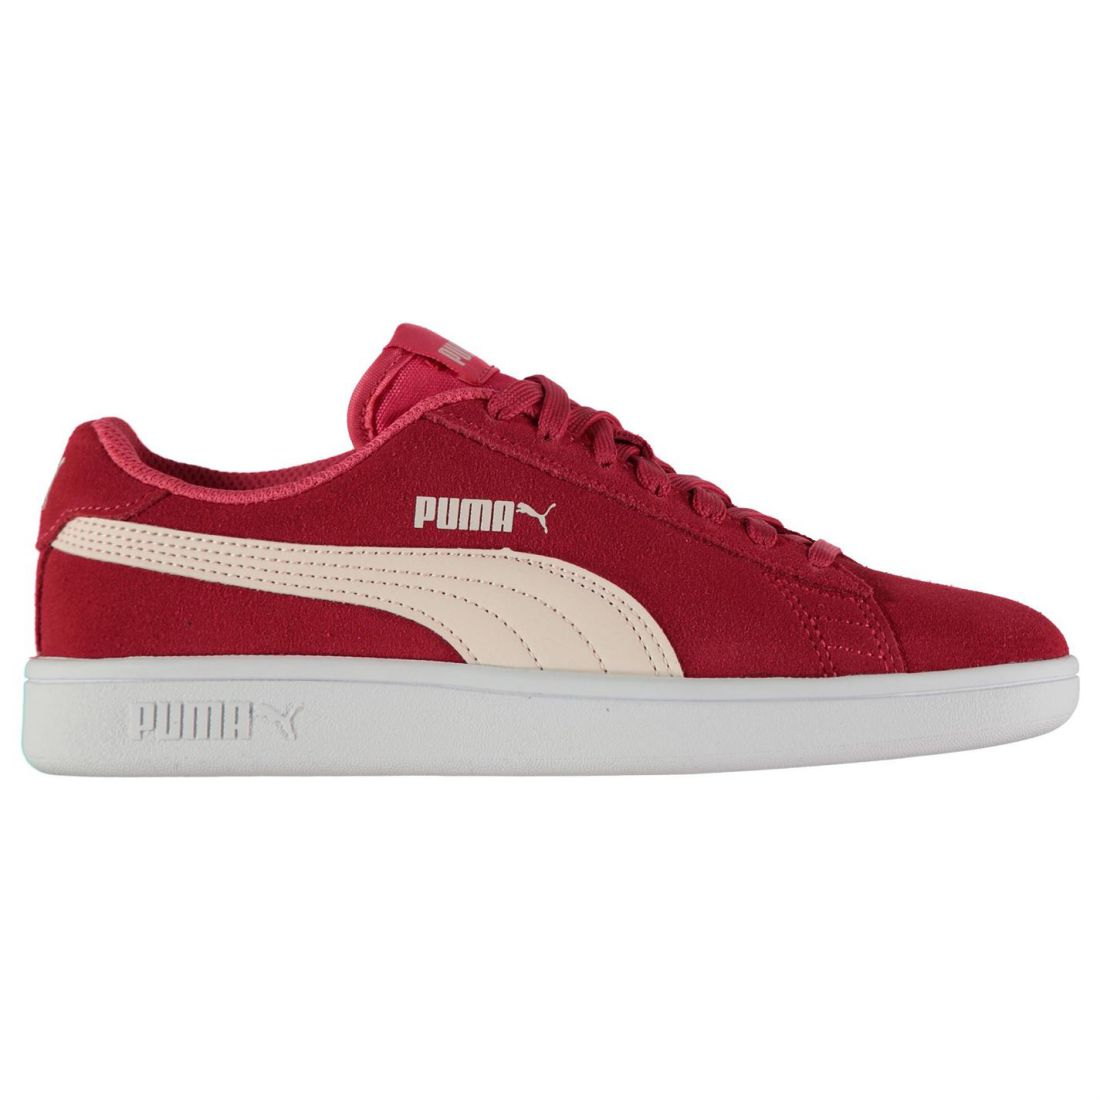 Puma Smash Suede Youngster Girls Sneakers Laces Fastened ... 4049078fd